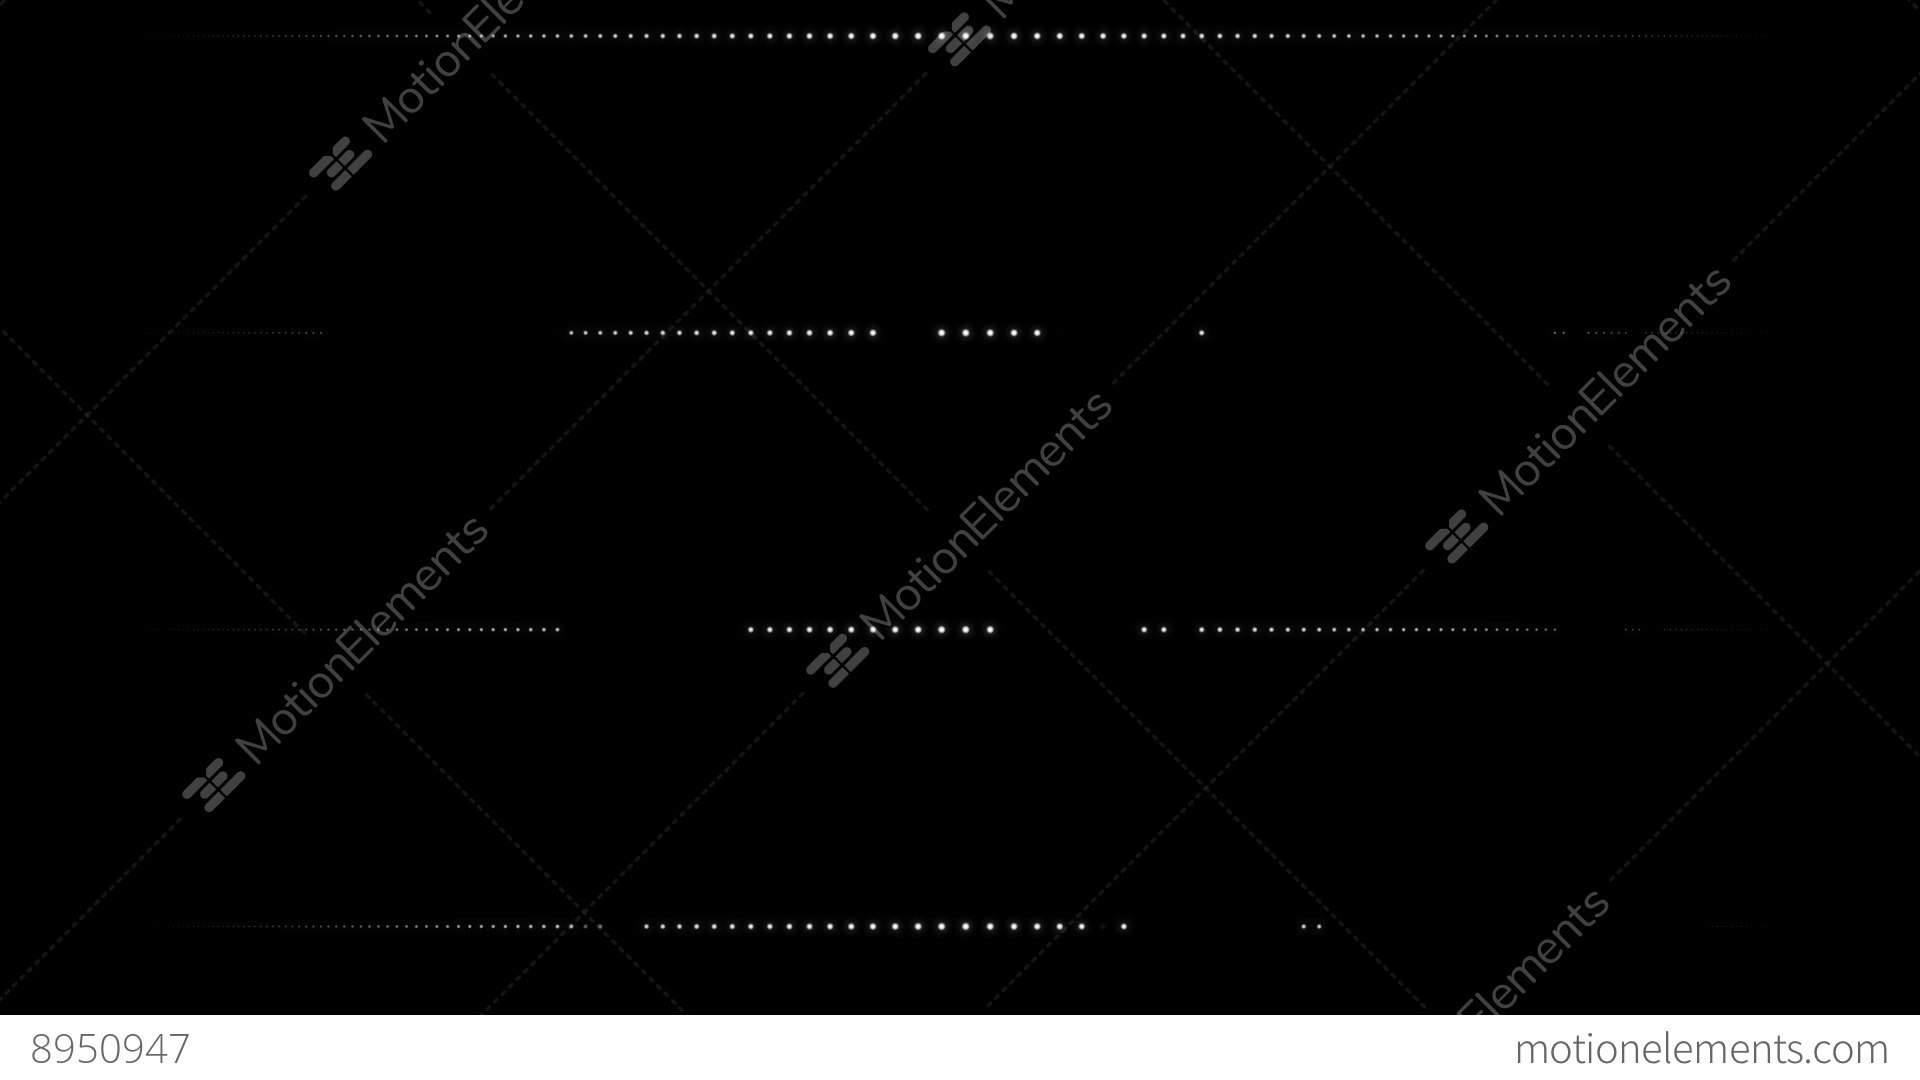 Science fiction graphic user interface of world map design element science fiction graphic user interface of world map stock video footage gumiabroncs Images